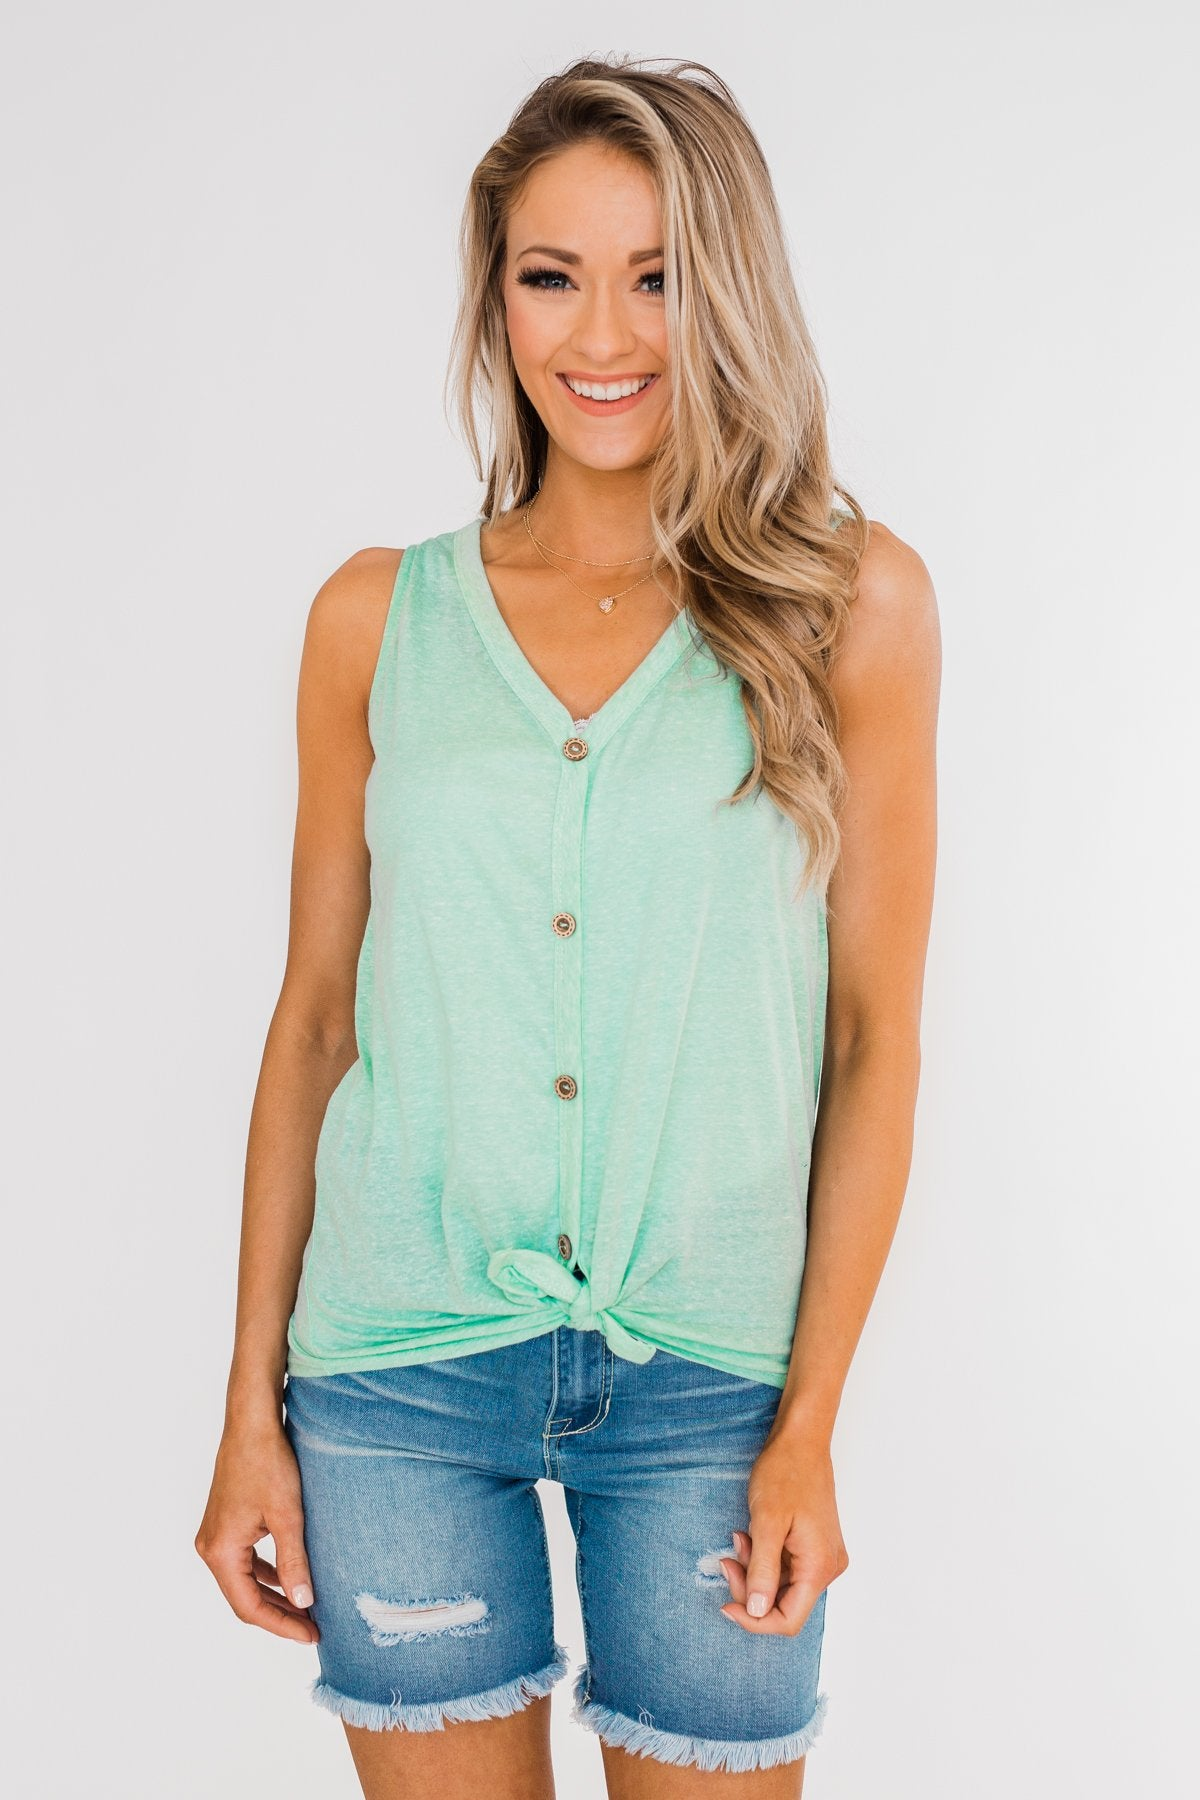 Everyday Button Tie Tank Top- Mint